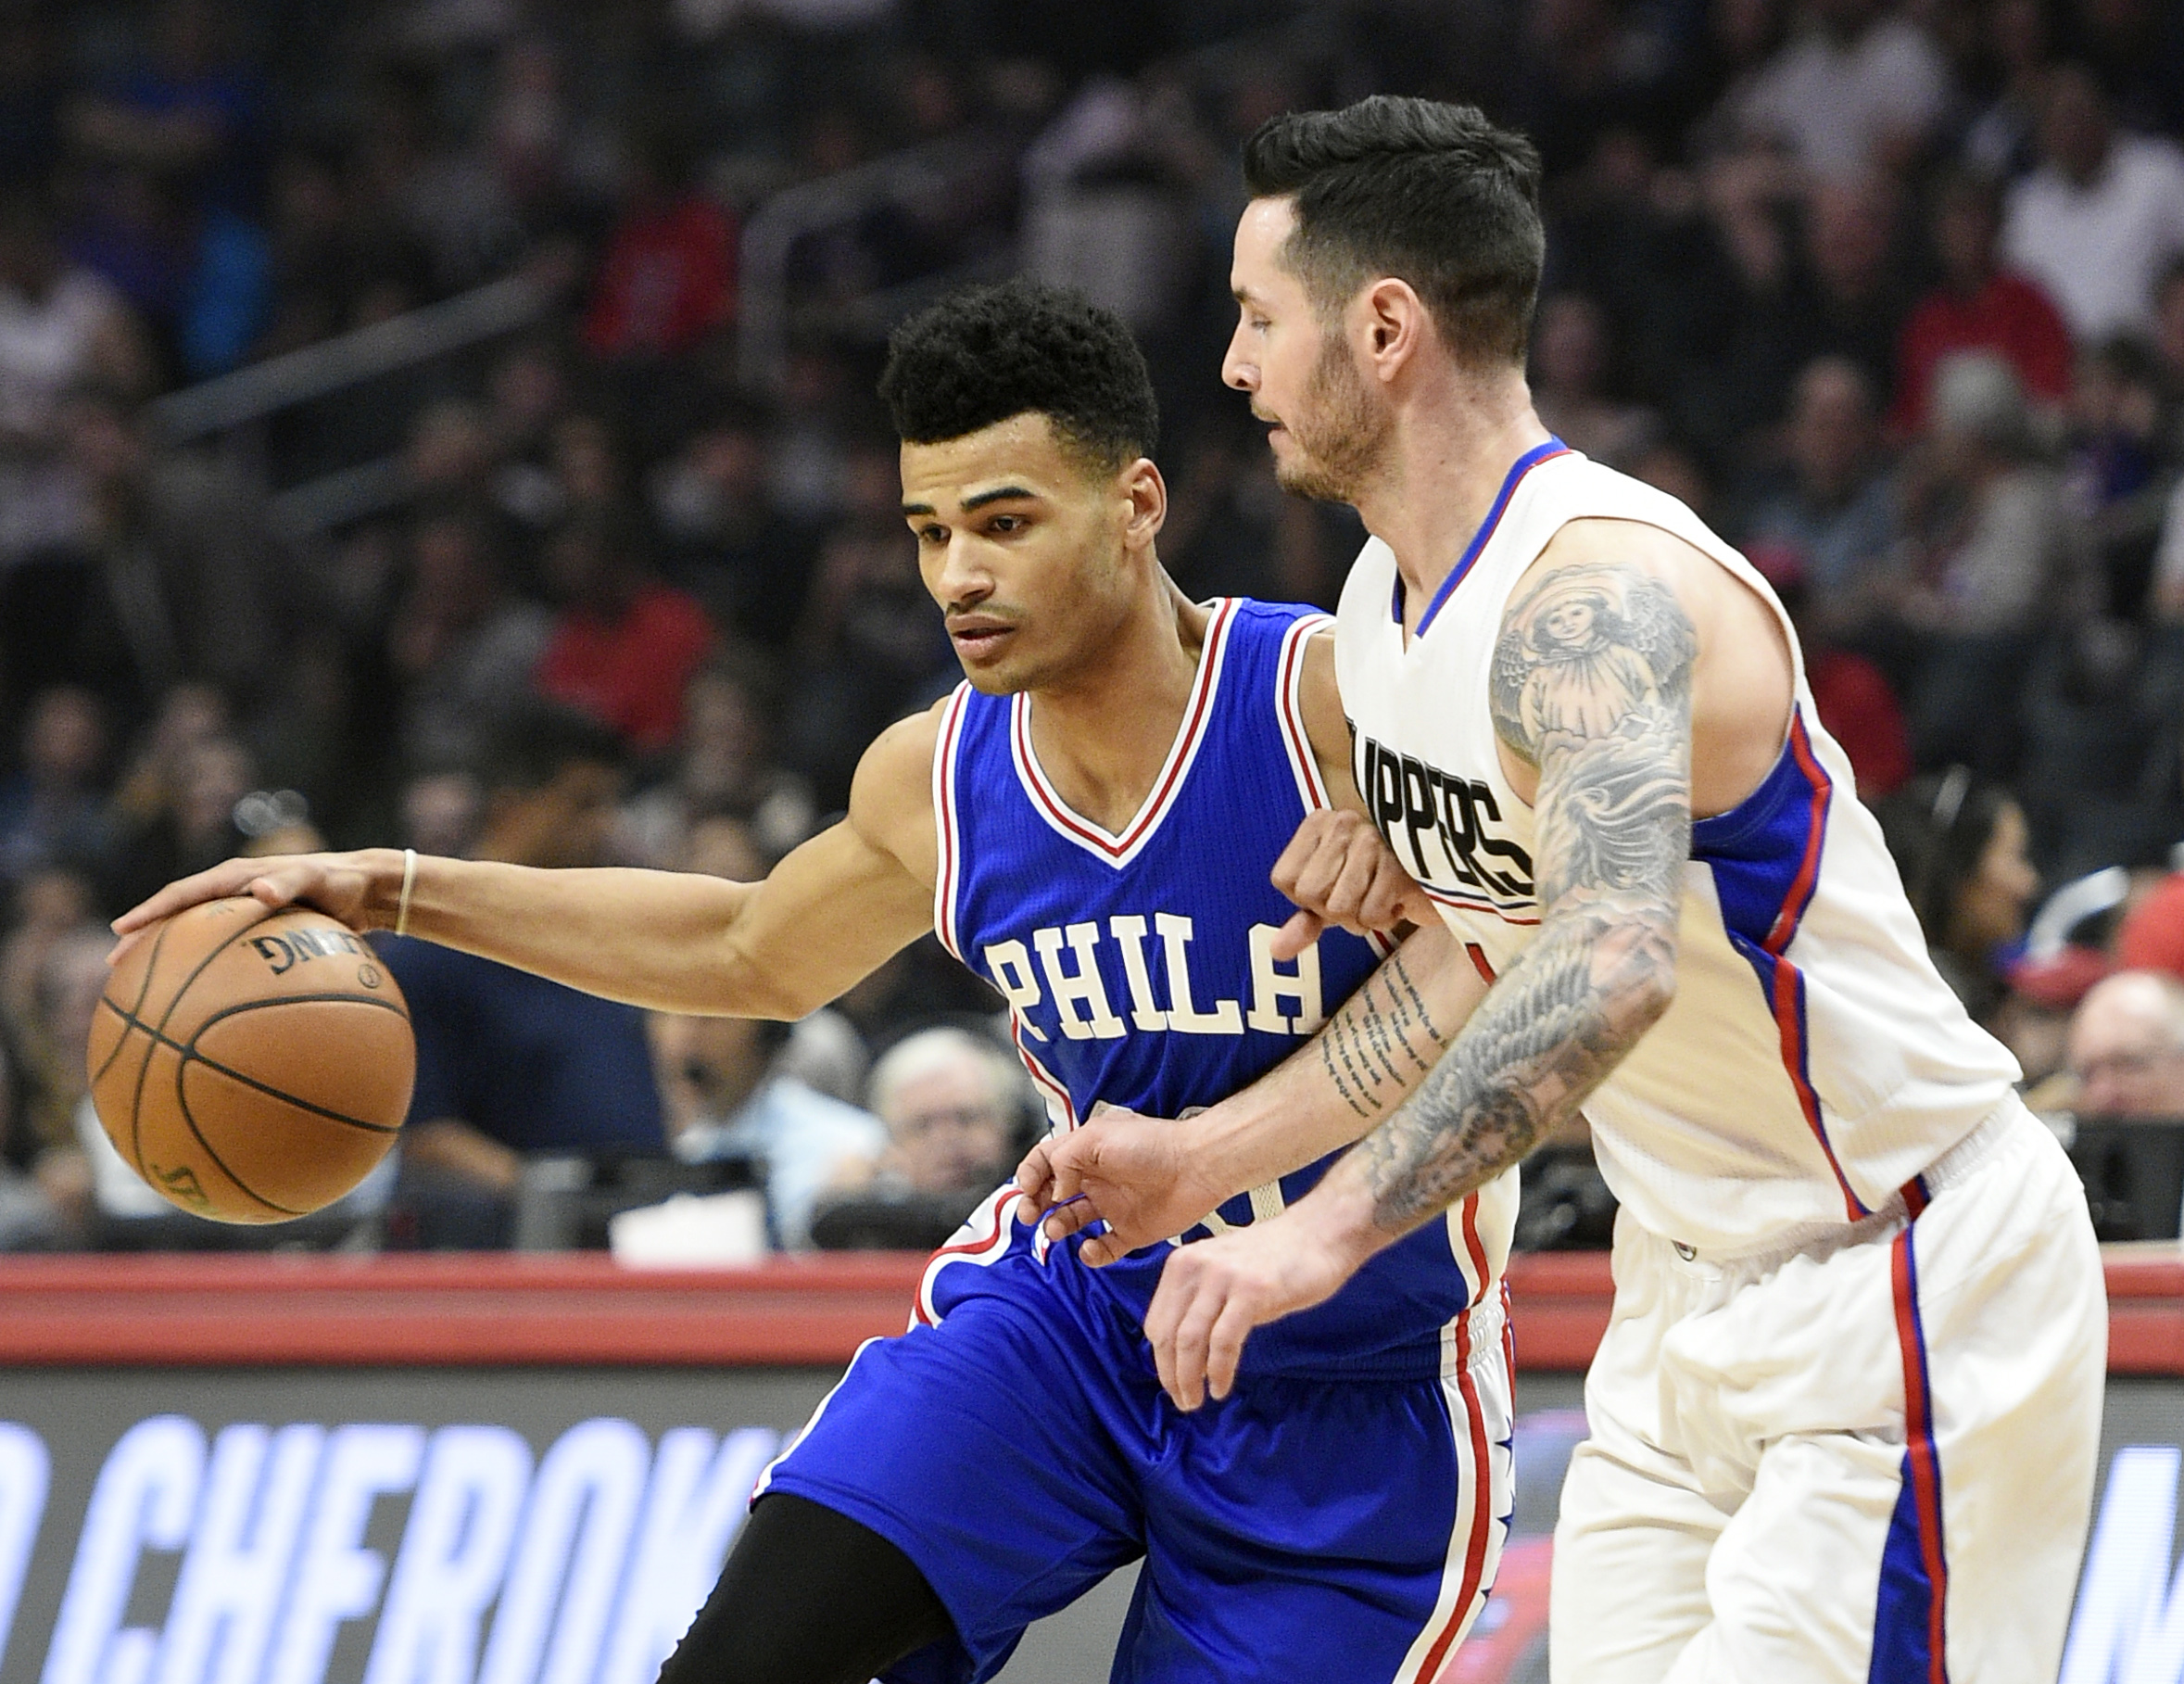 9933714-nba-philadelphia-76ers-at-los-angeles-clippers